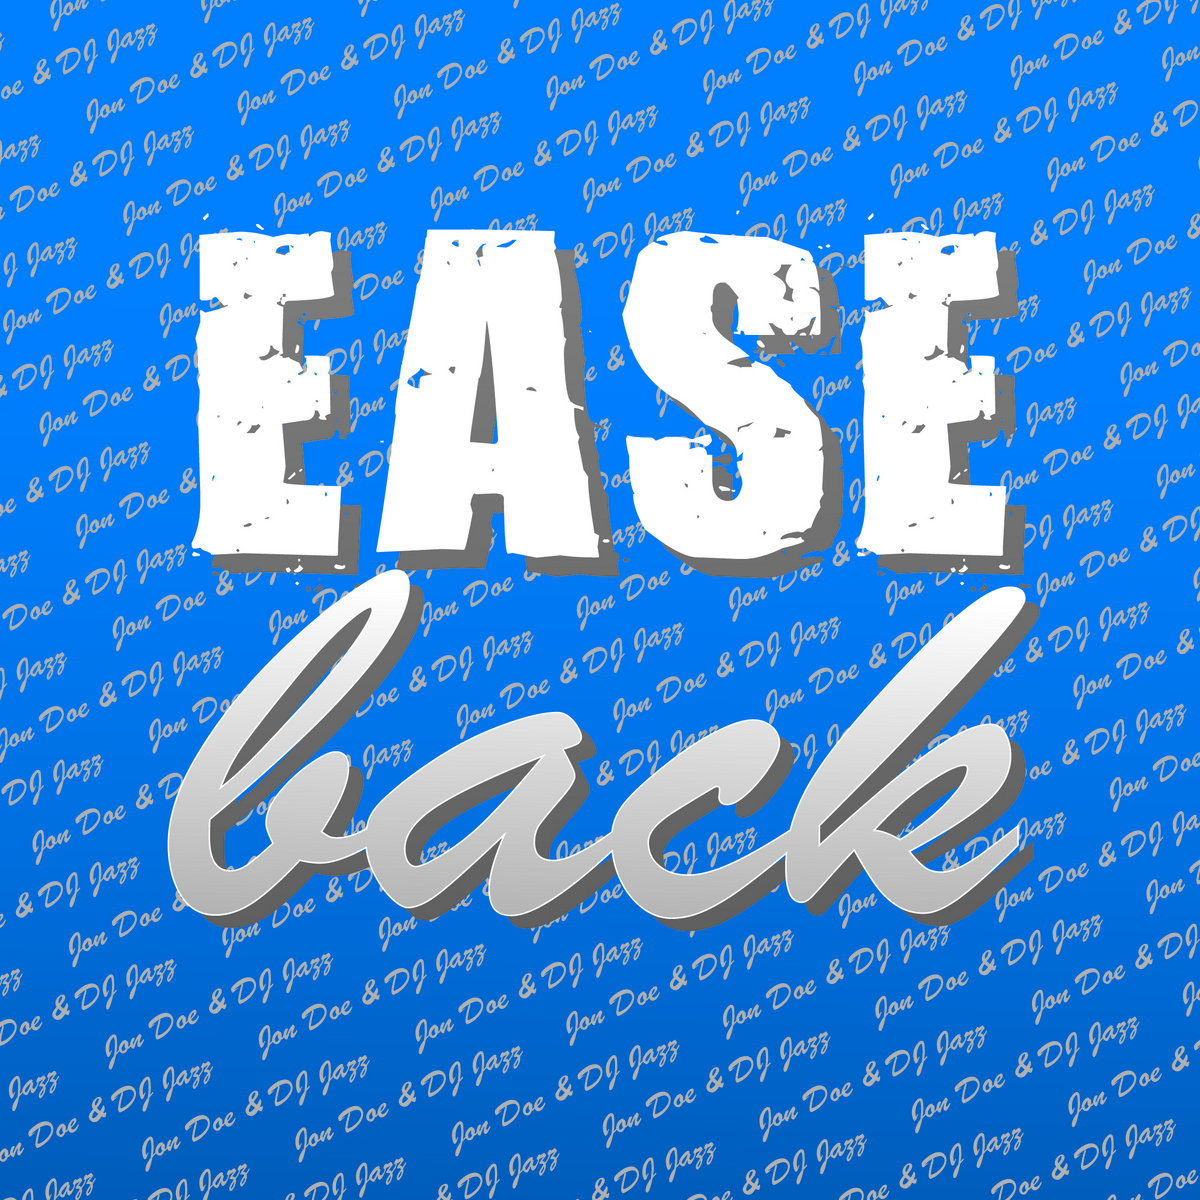 Ease Back (Instrumental) | aeproductions